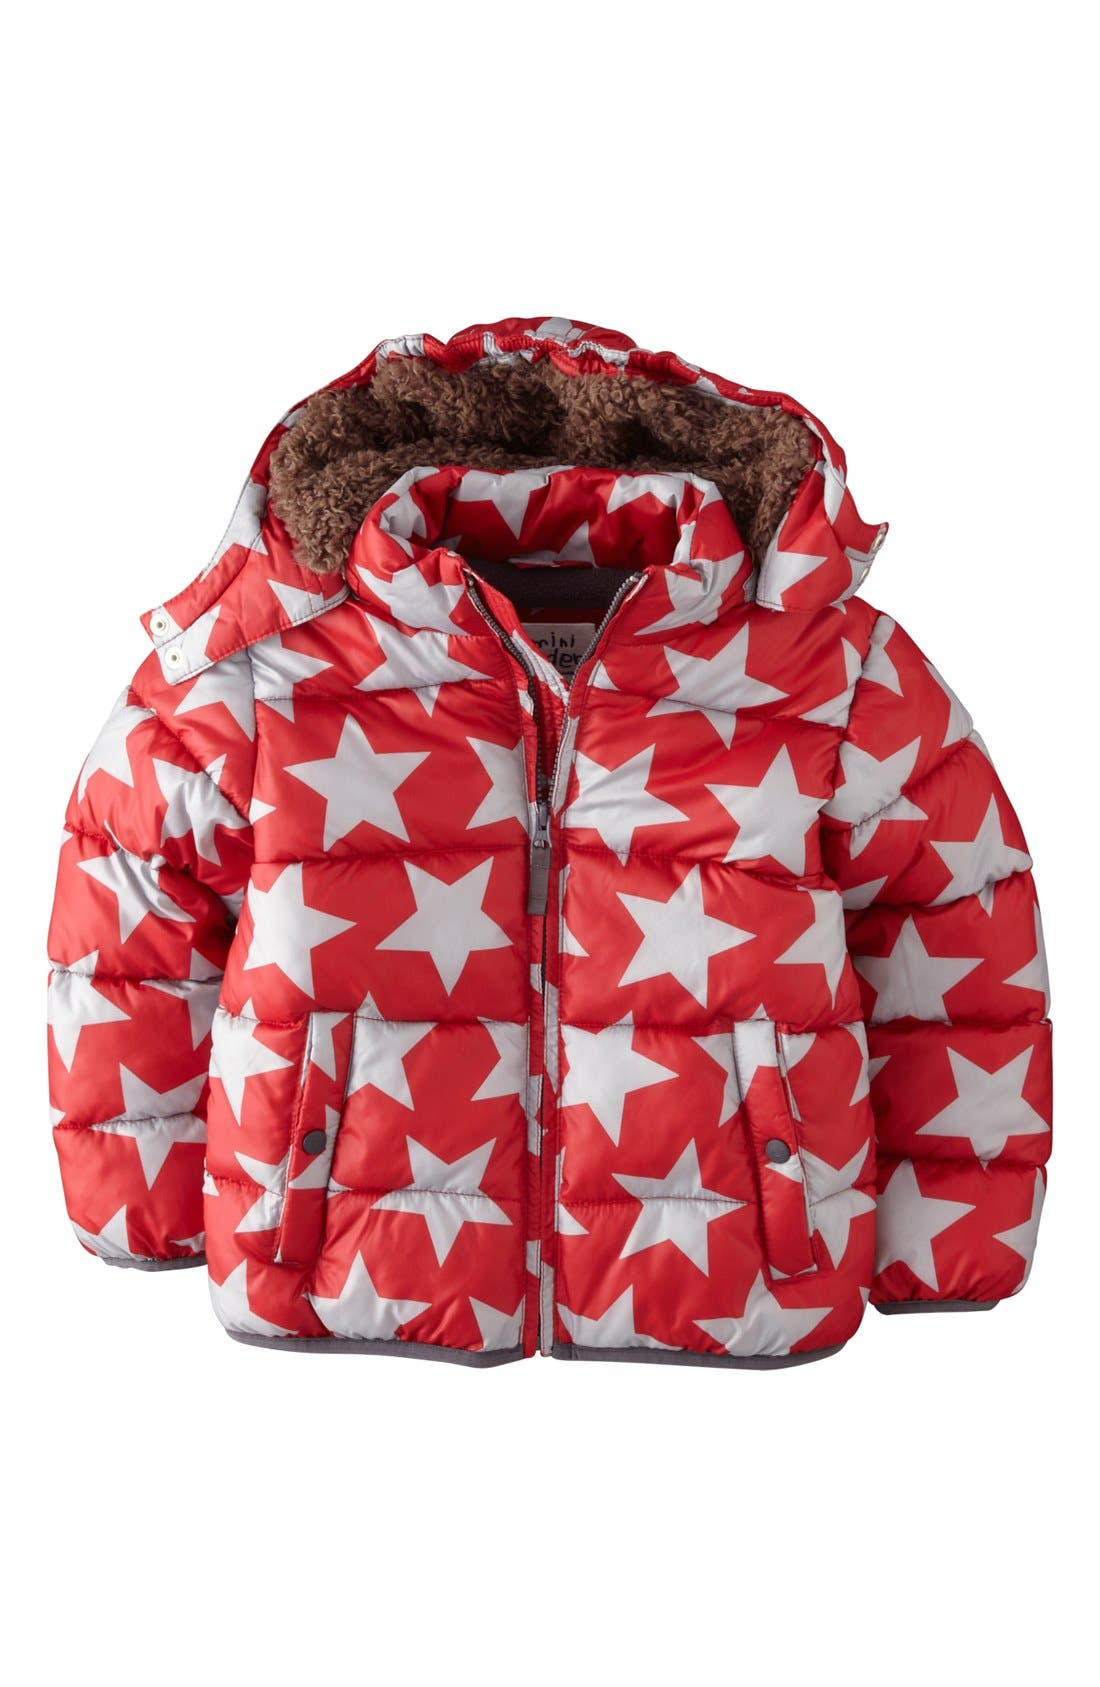 Alternate Image 1 Selected - Mini Boden Quilted Jacket (Toddler Boys)